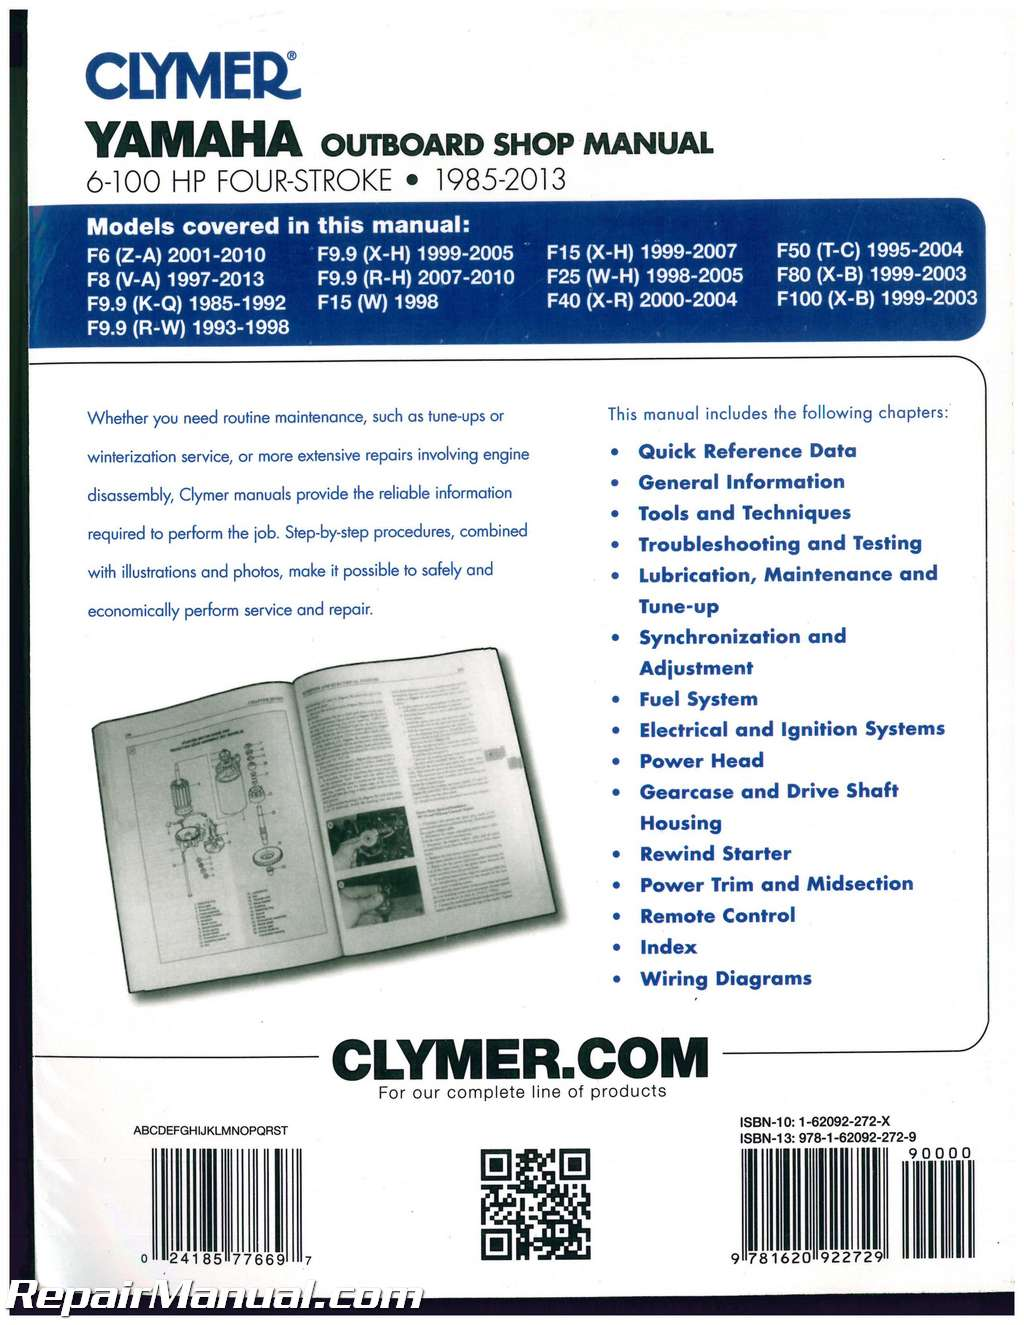 yamaha 6 100hp outboard repair manual 1985 2013 by clymer rh repairmanual com yamaha f100 outboard repair manual Yamaha Outboards Manuals 2010